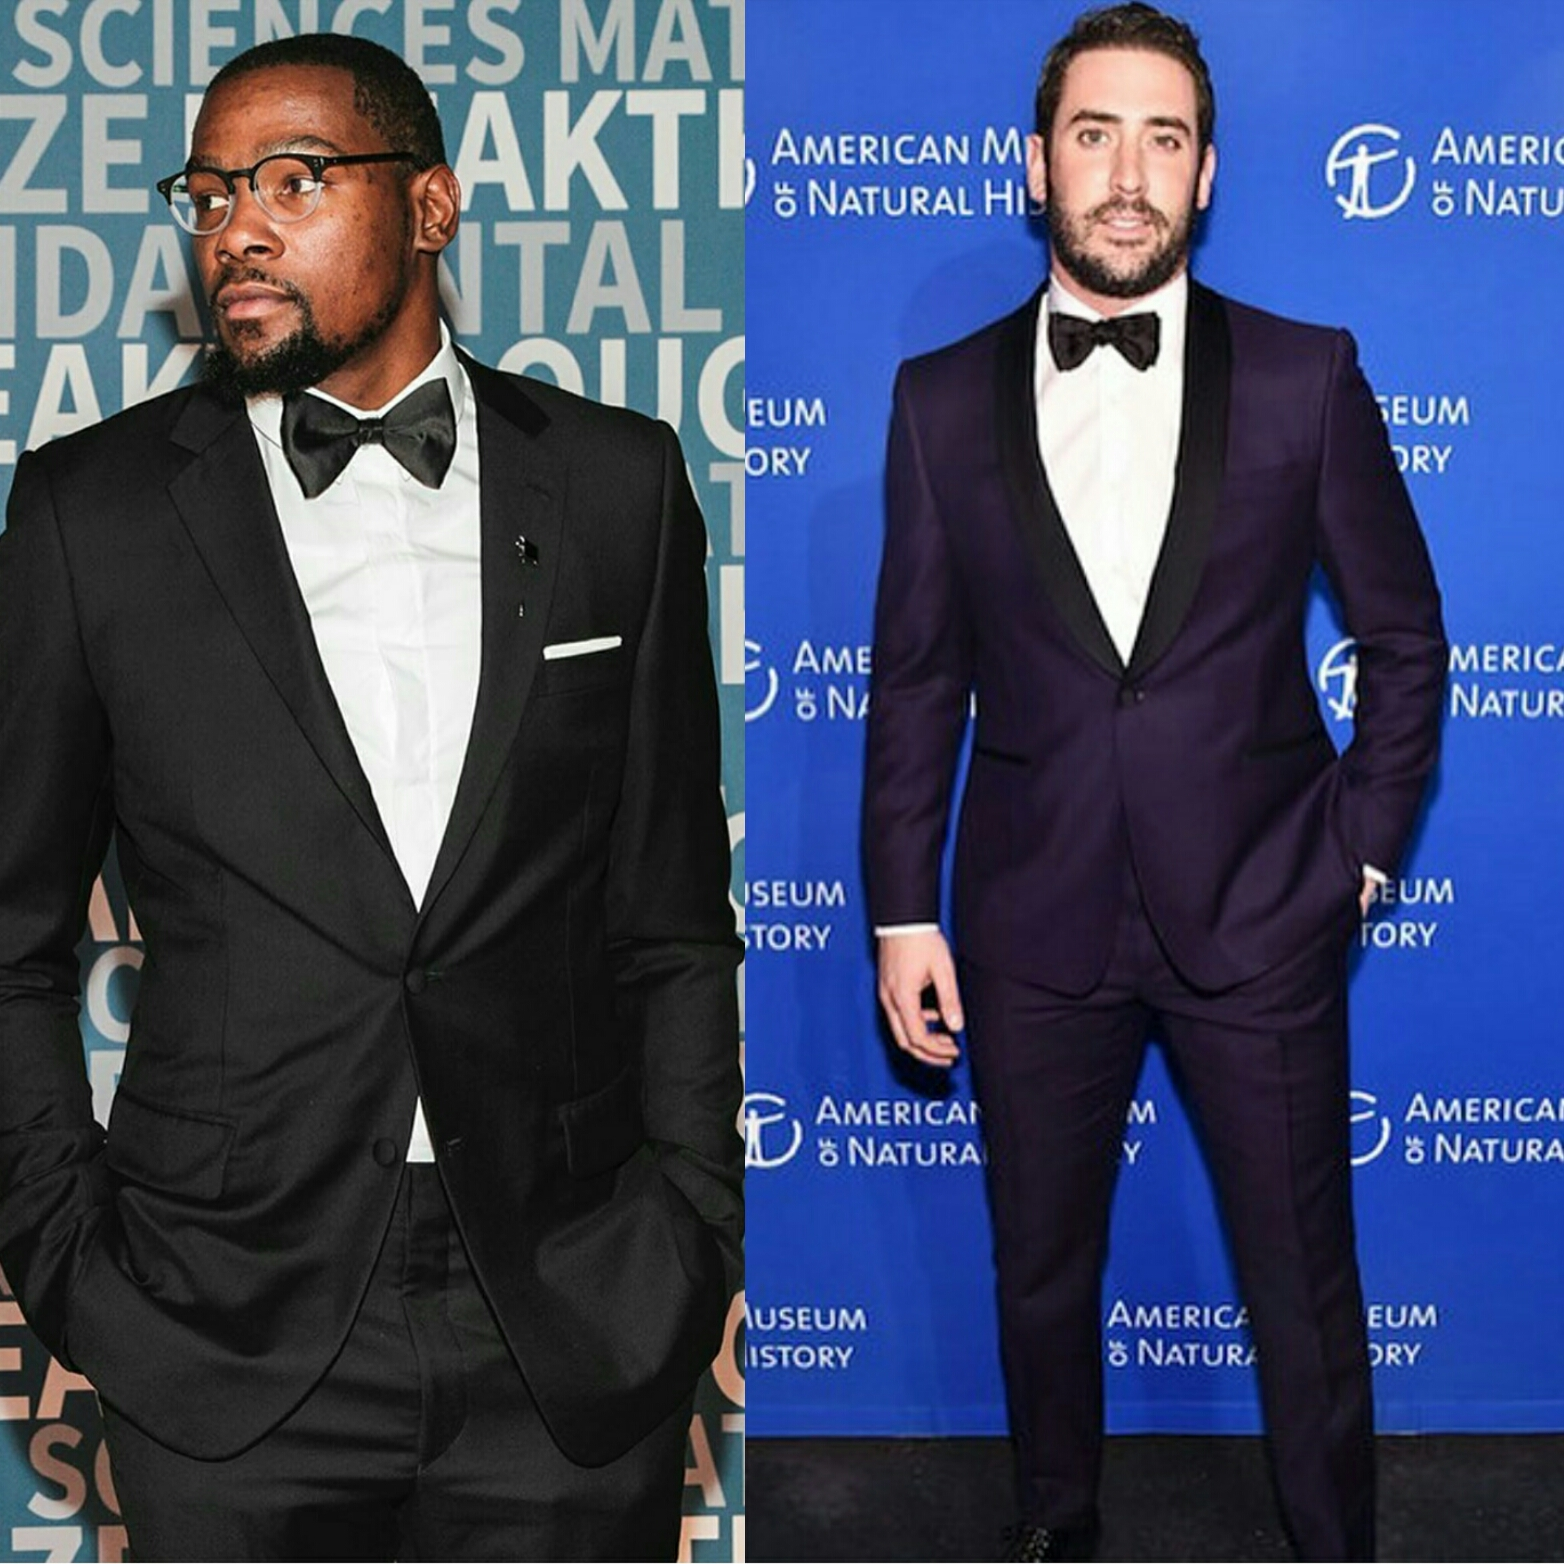 STYLE: Kevin Durant & Matt Harvey Dress in Tuxedos For Recent Galas